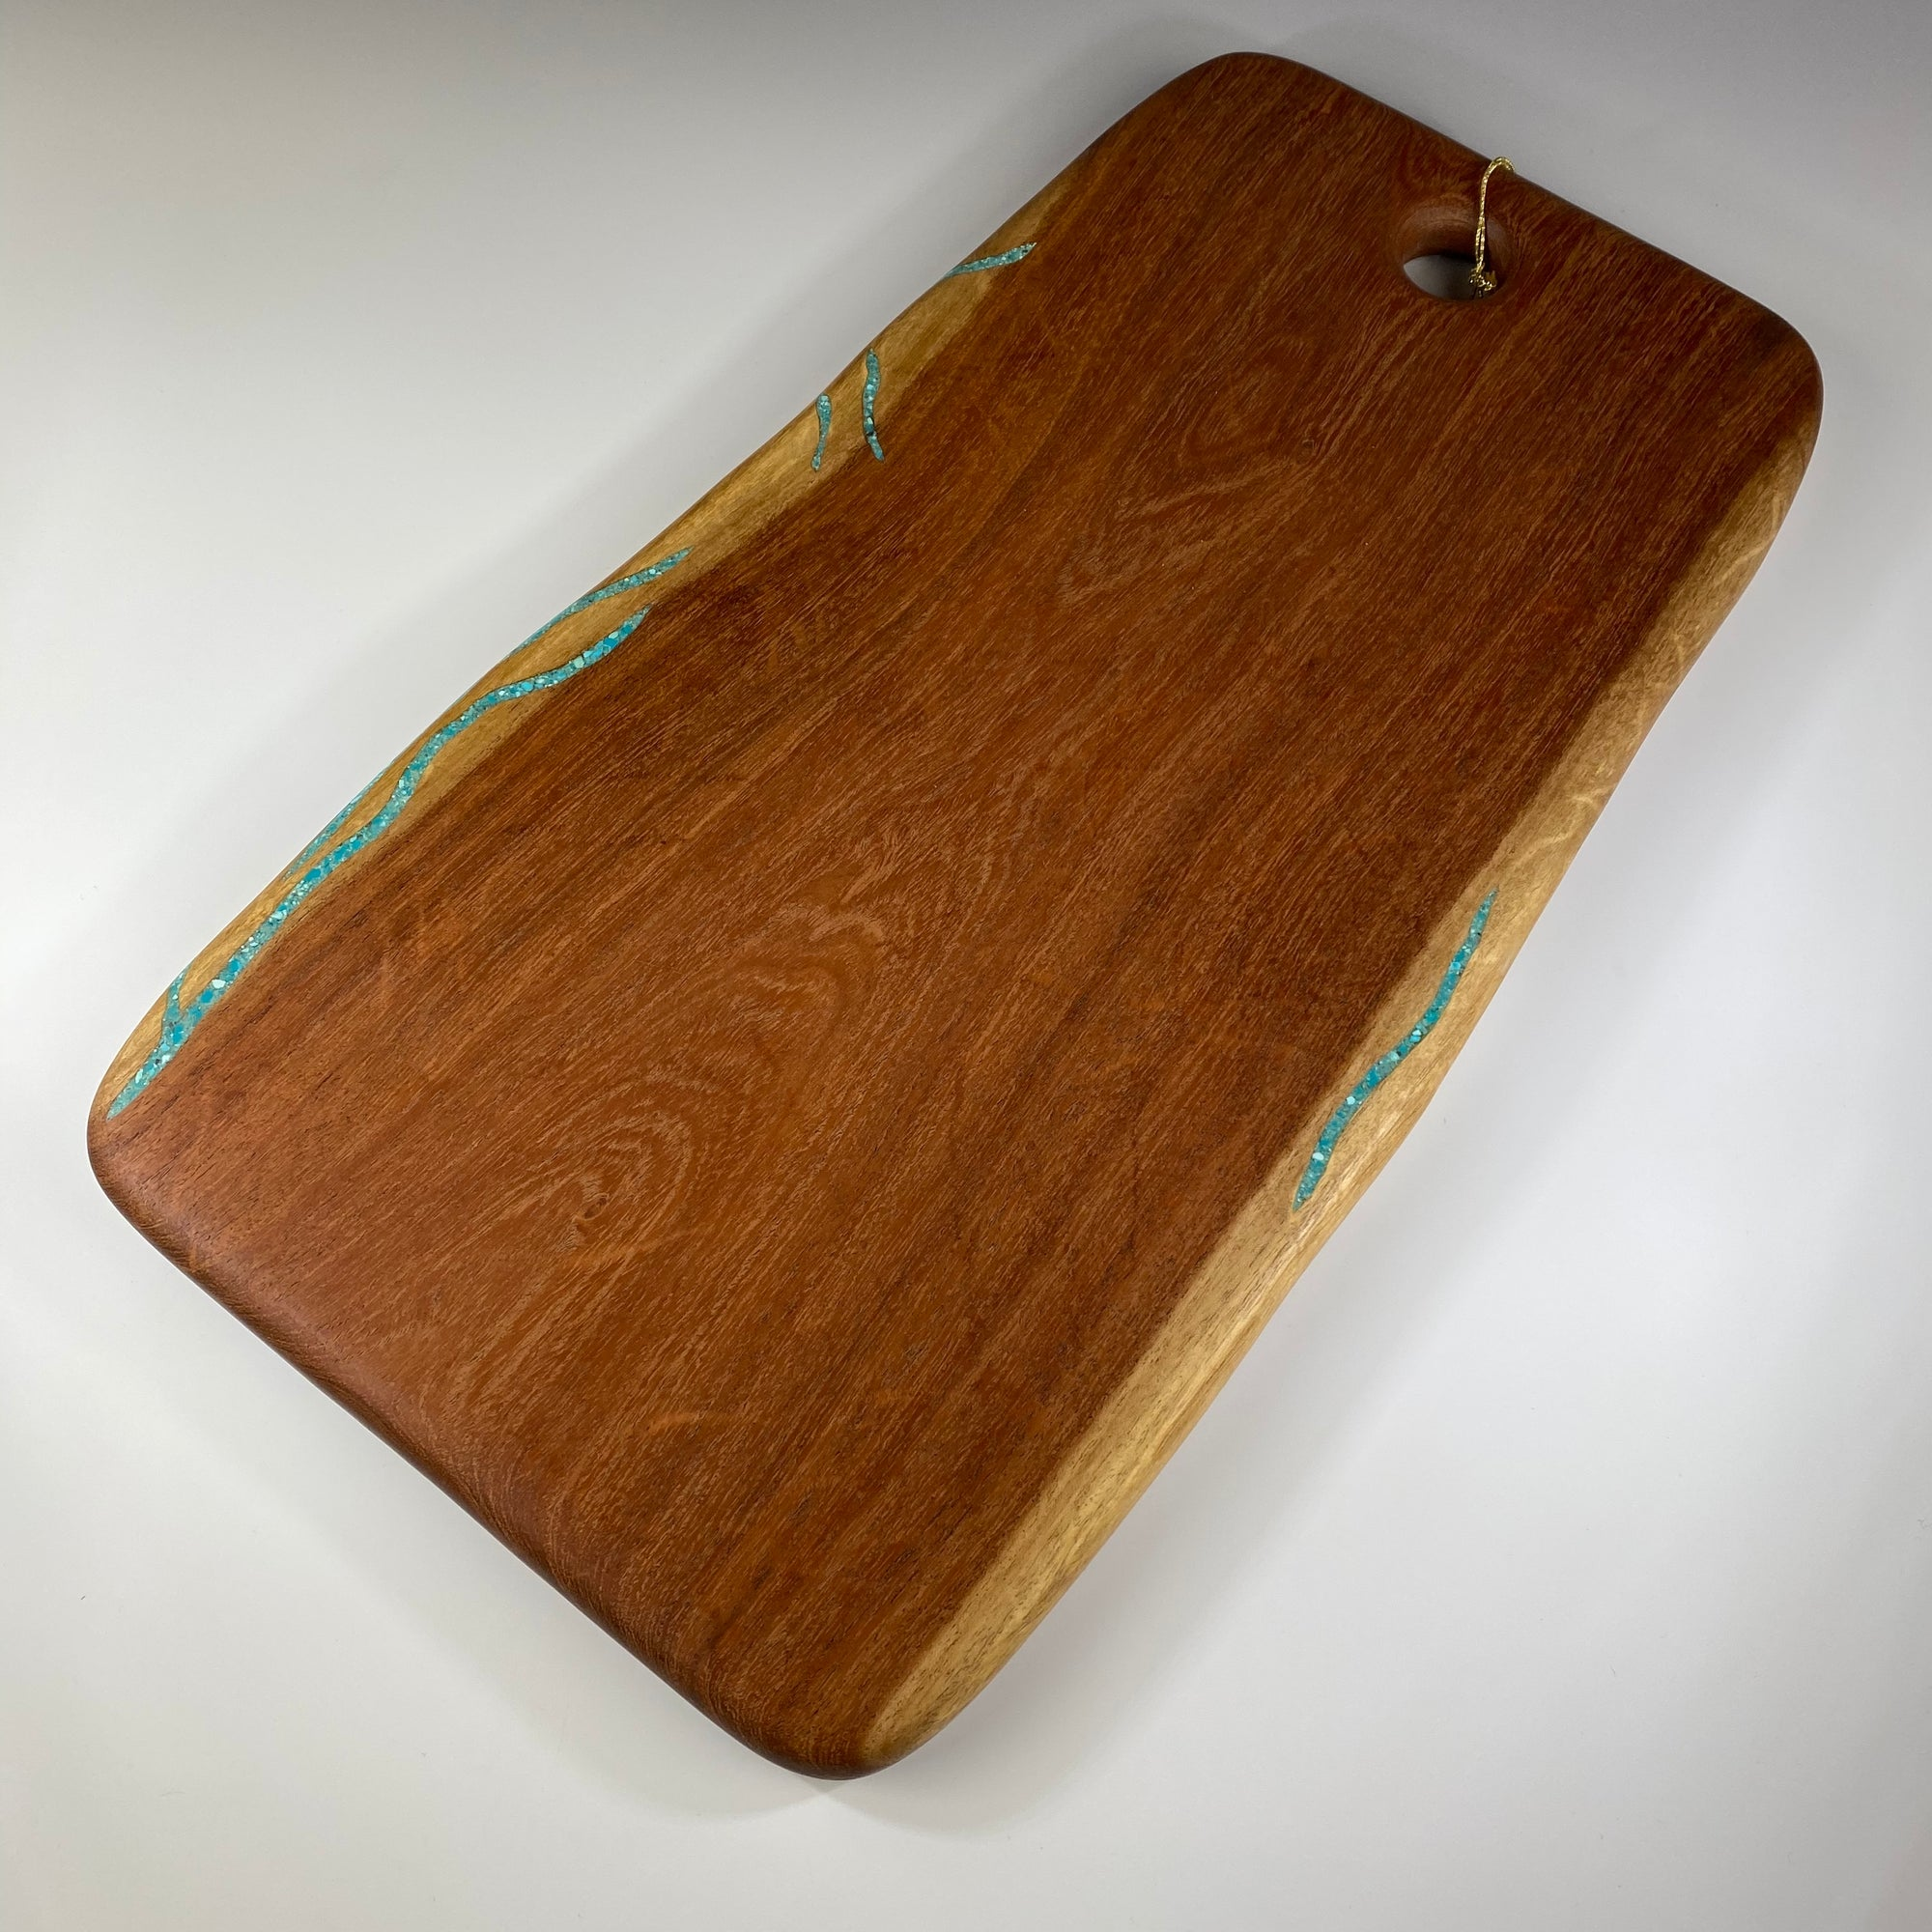 Sidelines Mesquite Board with Turquoise - Heart of the Home PA